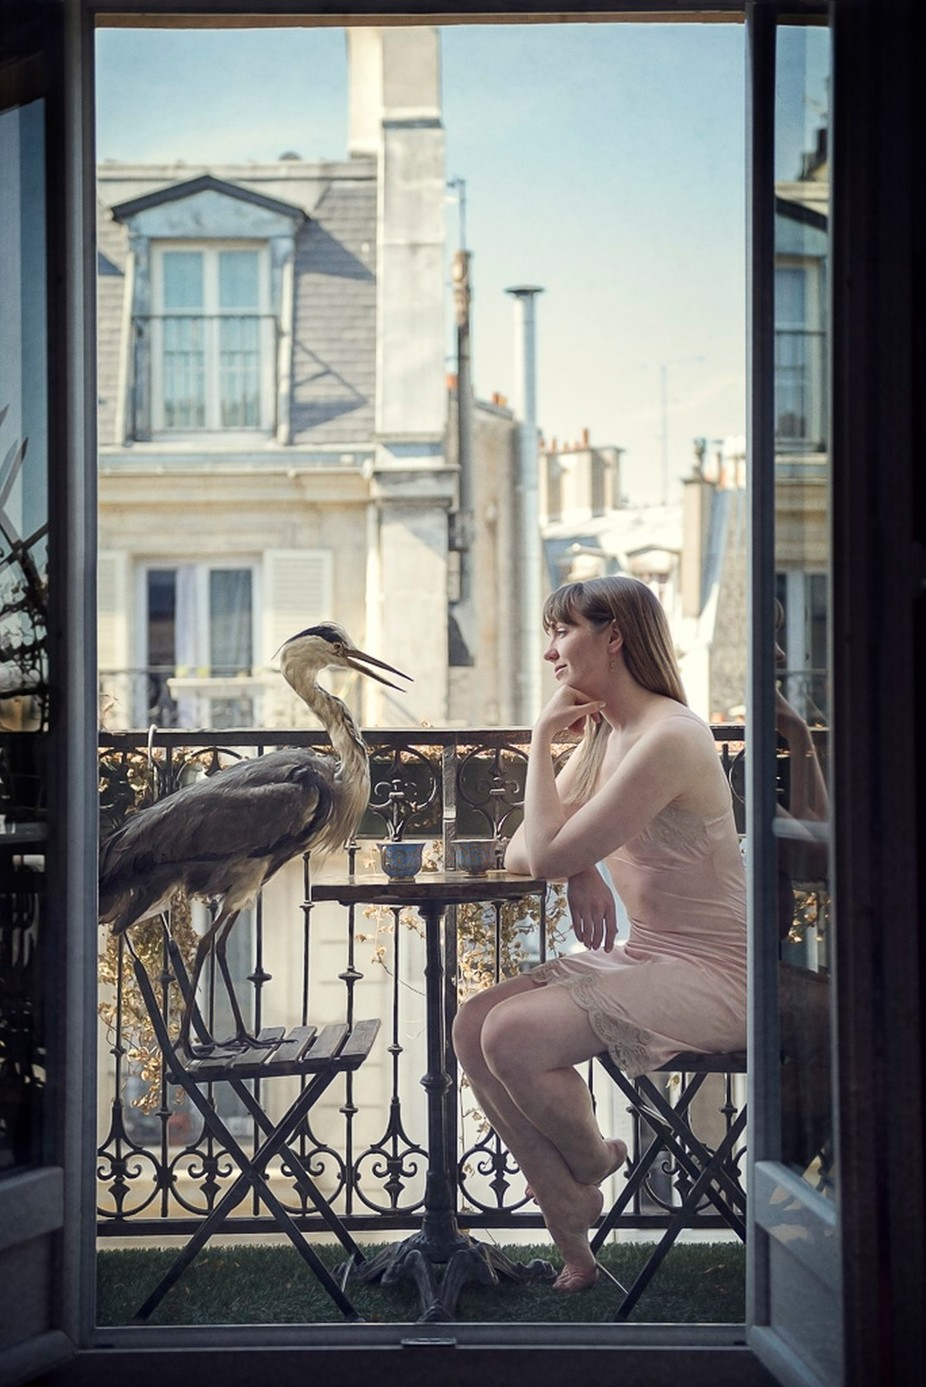 Bedroom Conversations by marisawhite - Paris Photo Contest